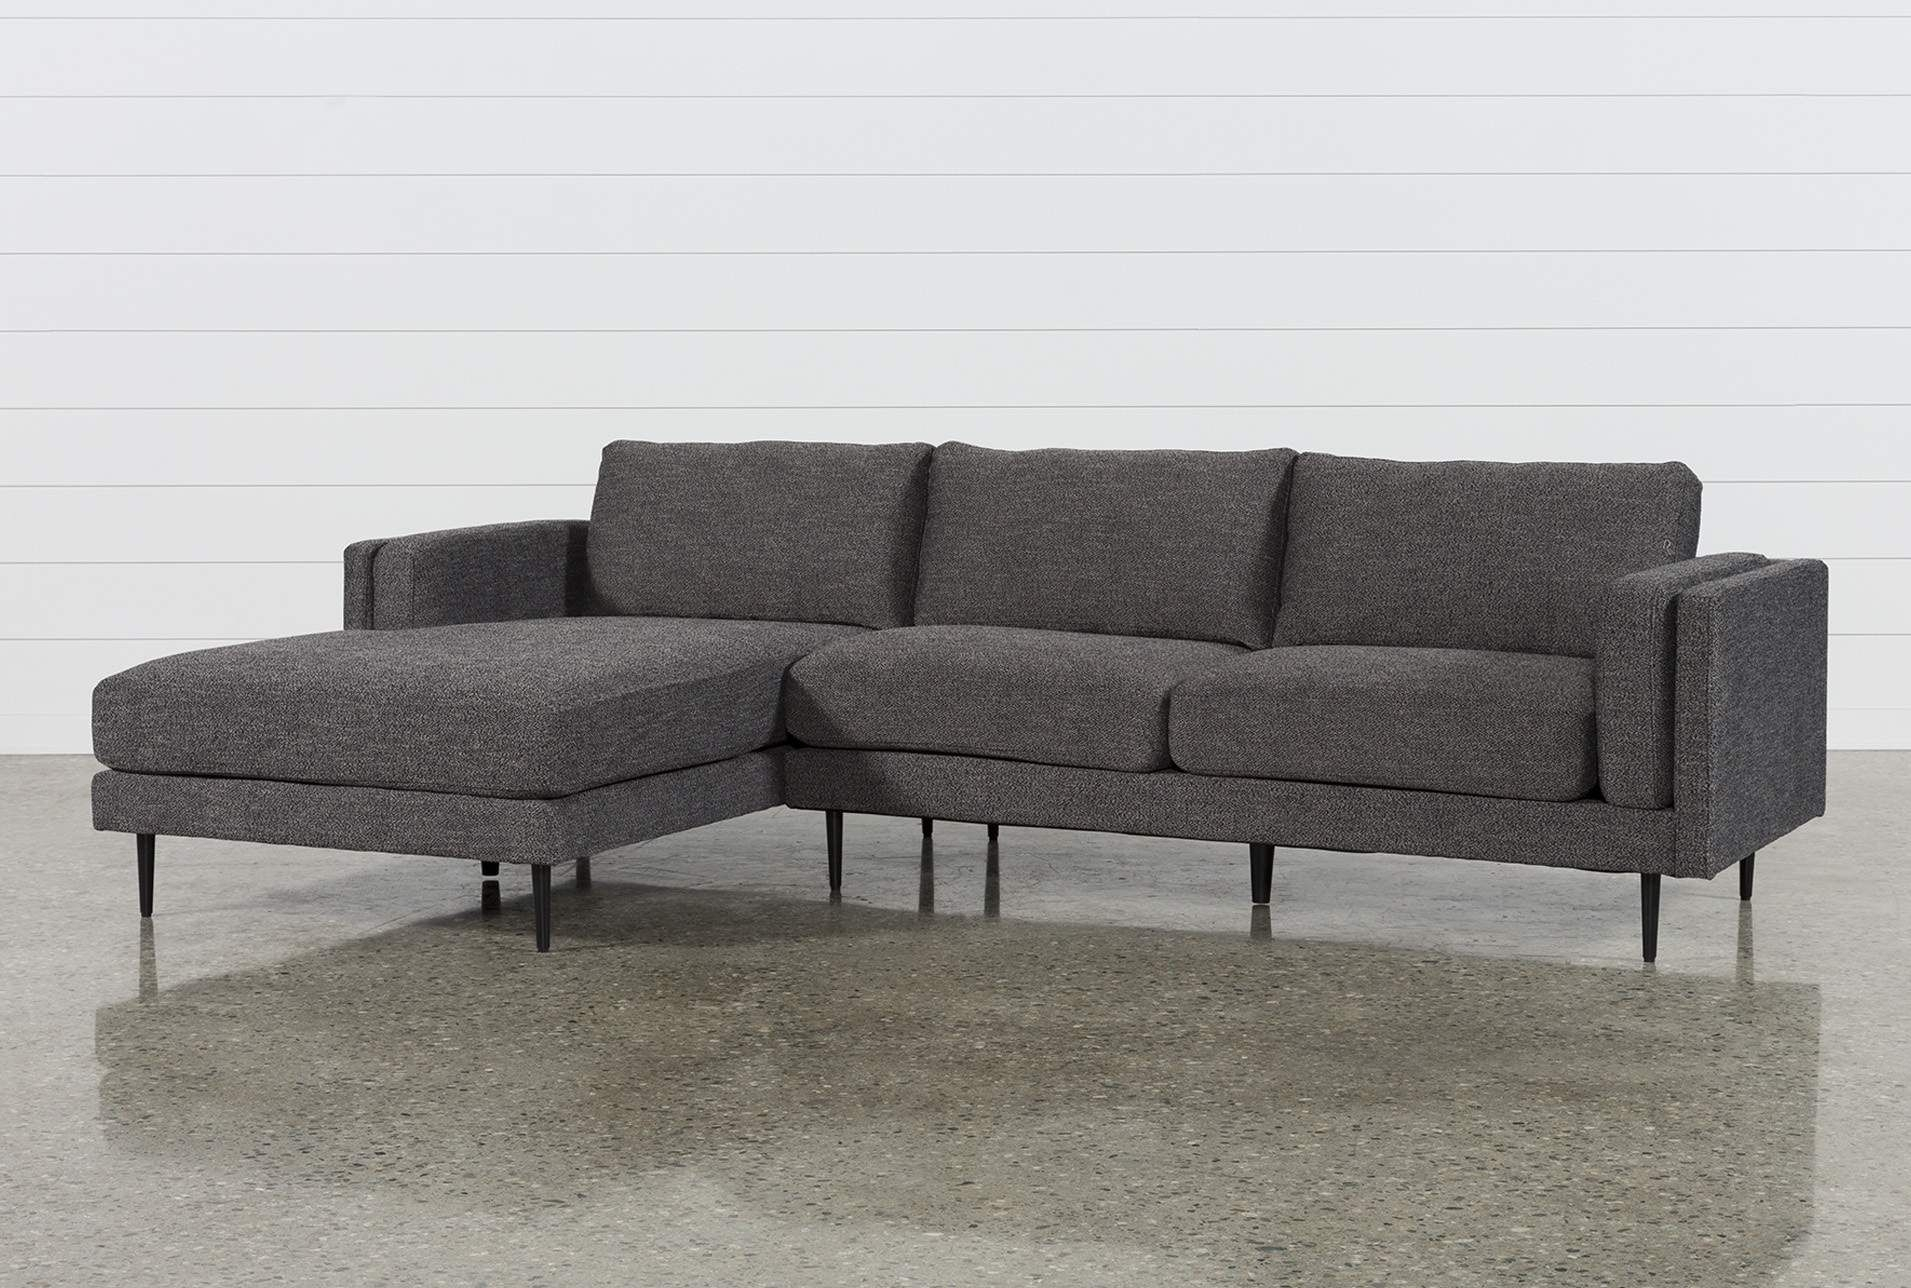 Aquarius Dark Grey 2 Piece Sectional W/laf Chaise | Pinterest Within Turdur 2 Piece Sectionals With Laf Loveseat (View 2 of 25)